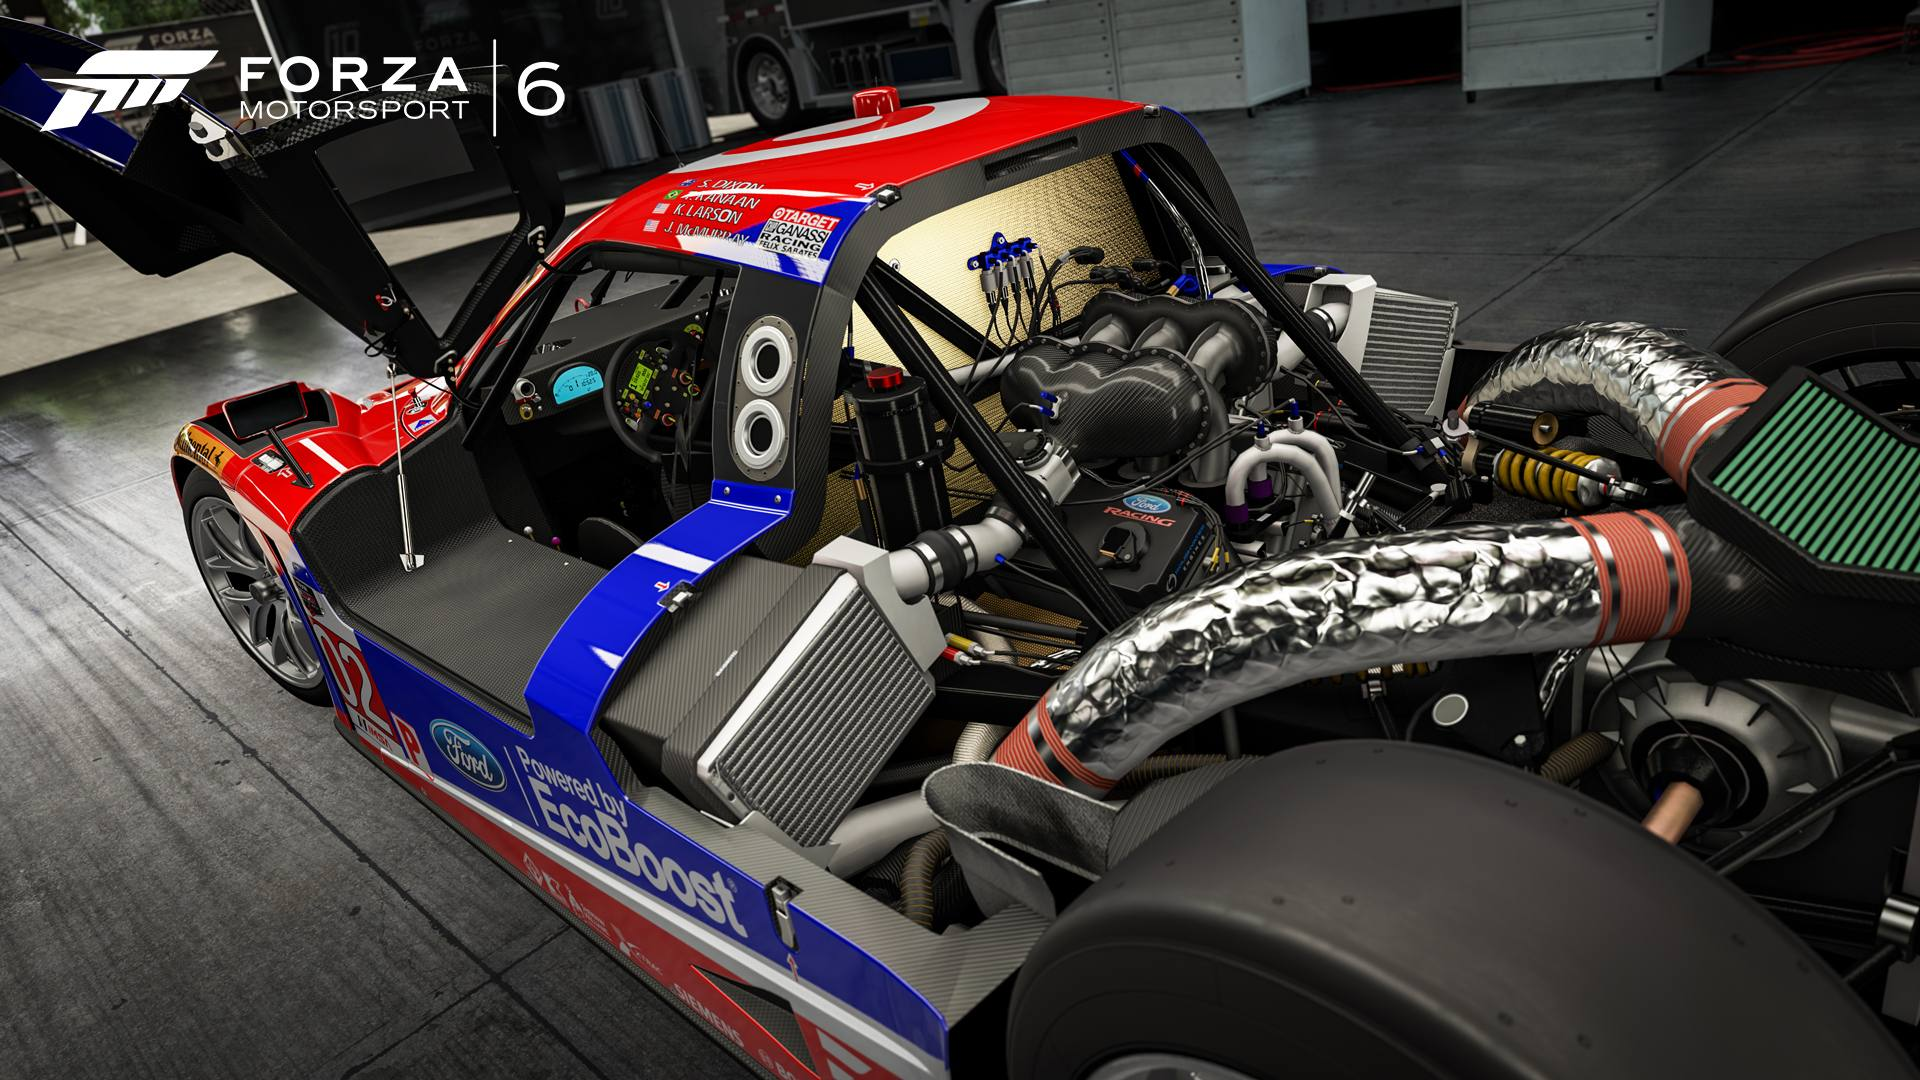 Forza Motorsport 6 27-01-16 2015 Ford #02 Chip Ganassi Racing Riley Mk XXVI Daytona Prototype